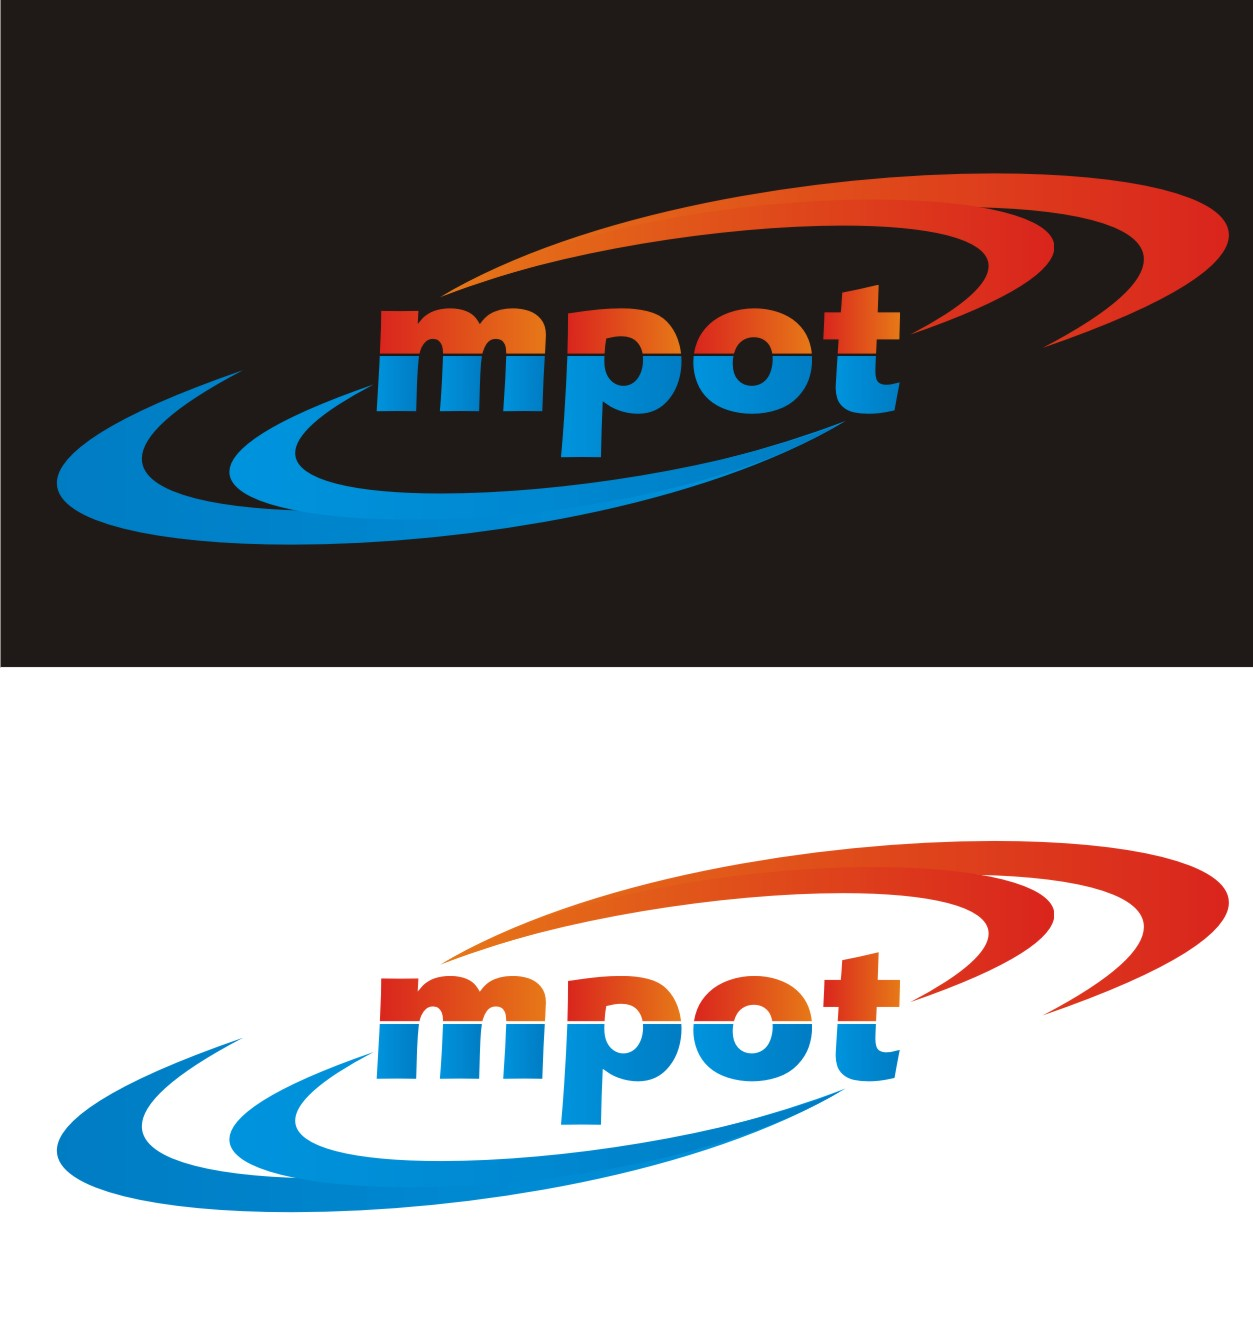 Logo Design by Yuda Hermawan - Entry No. 101 in the Logo Design Contest Mpot inc  Logo Design.